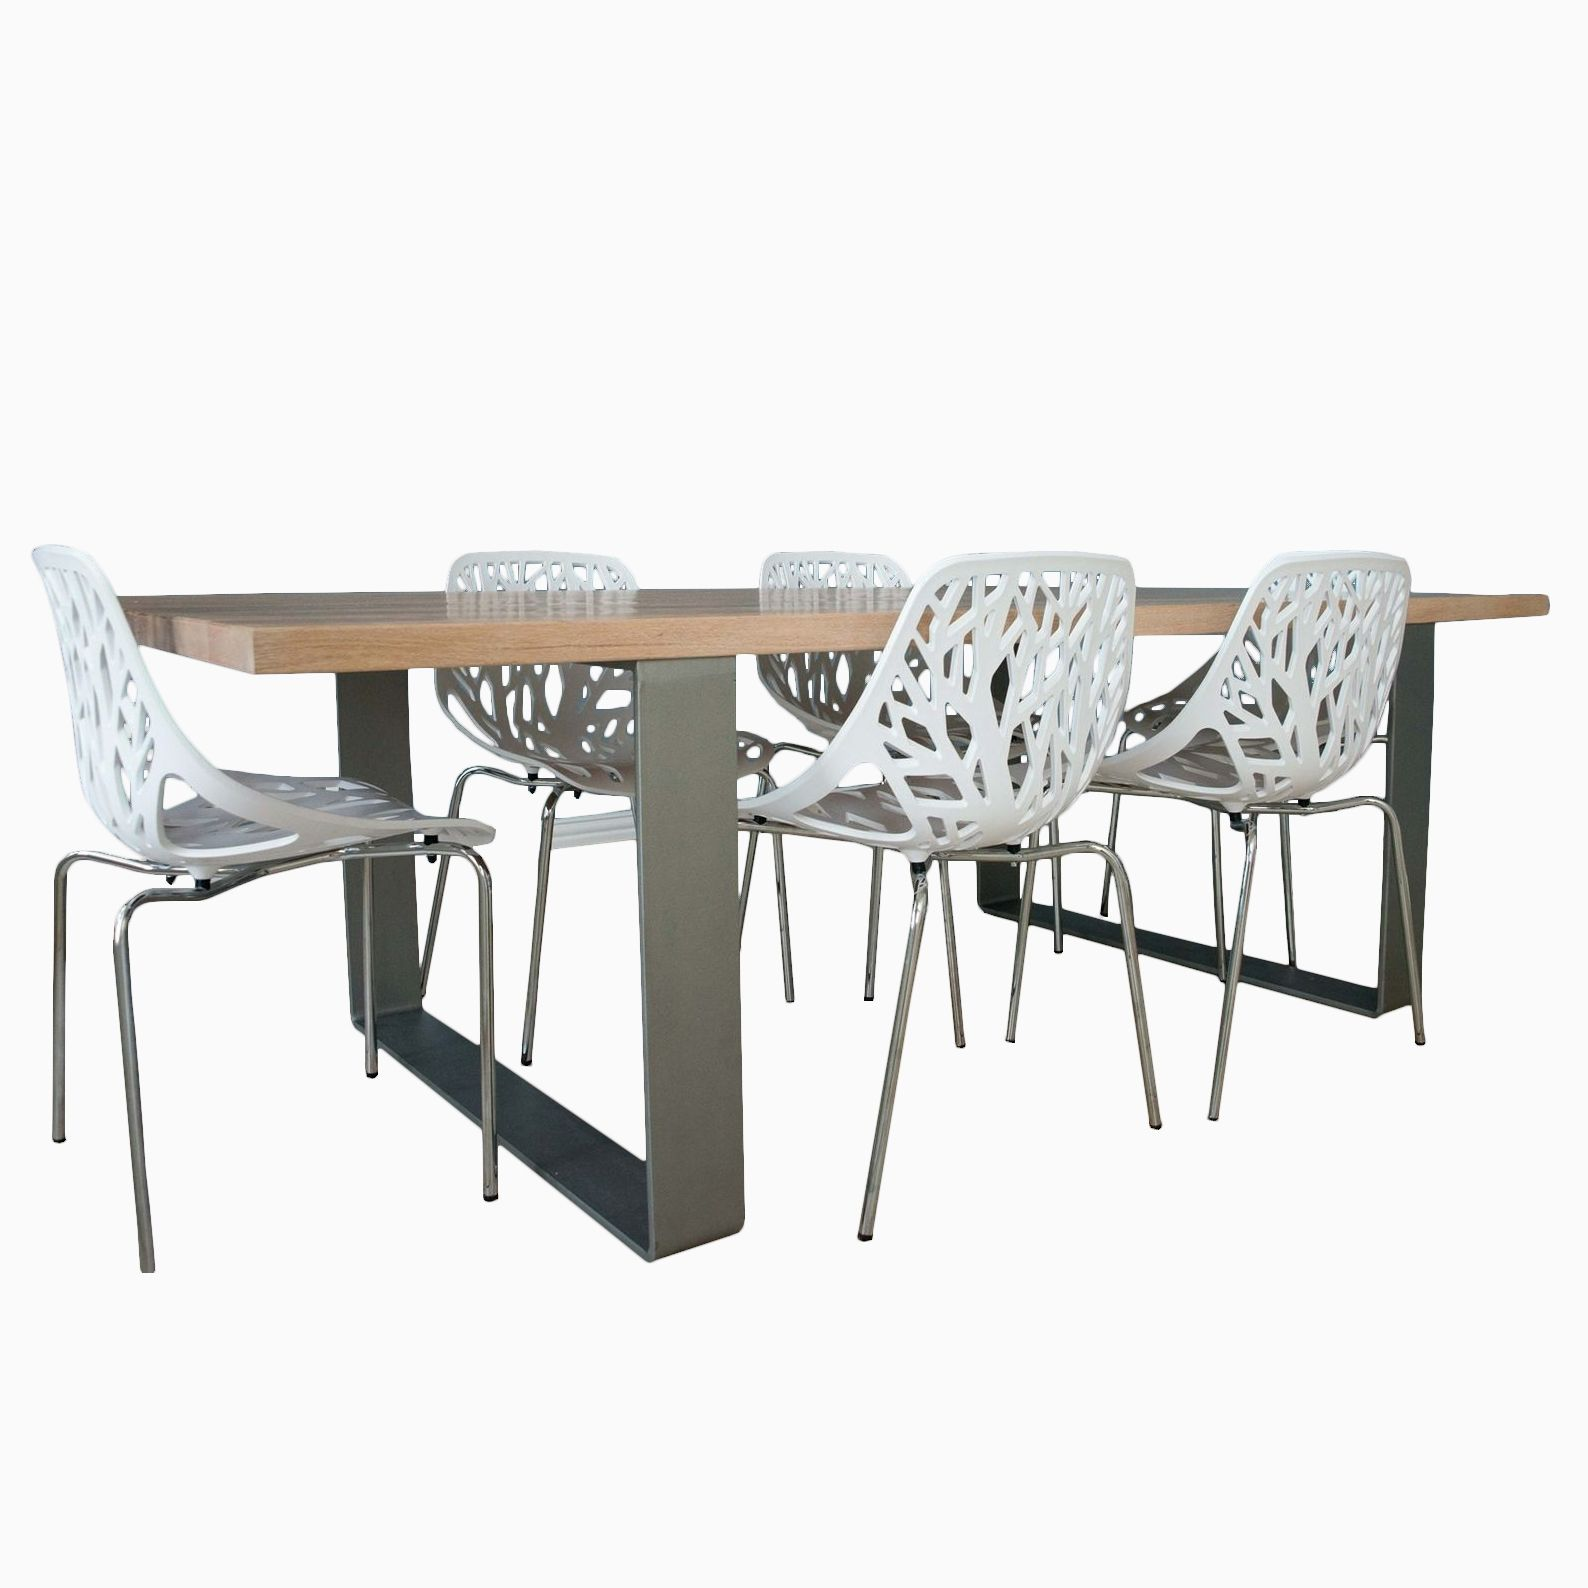 Buy Handmade Oak Dining Room Table With Iron Legs, Made To